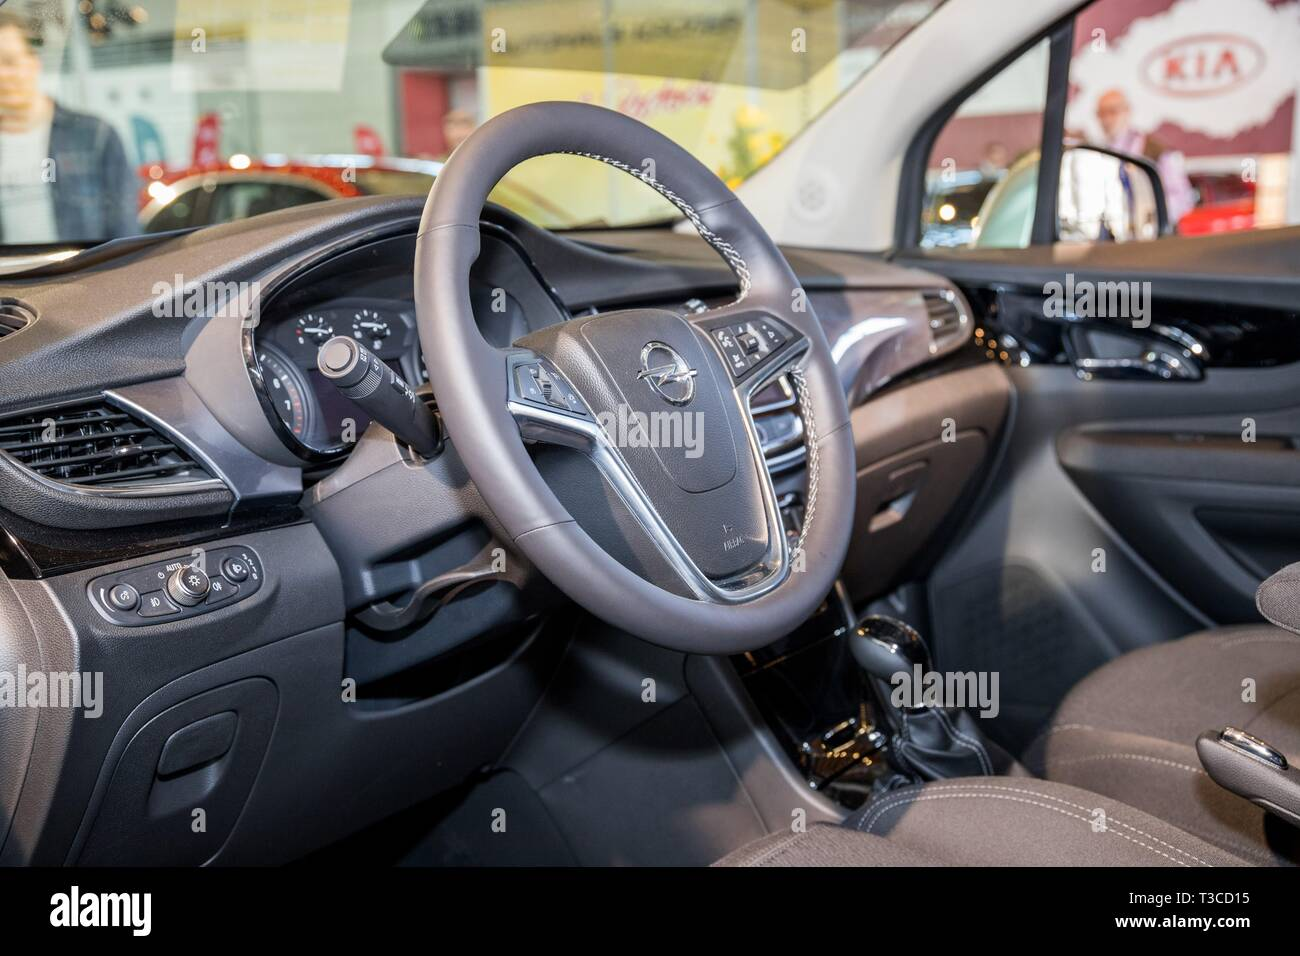 Opel Mokka Interior High Resolution Stock Photography And Images Alamy